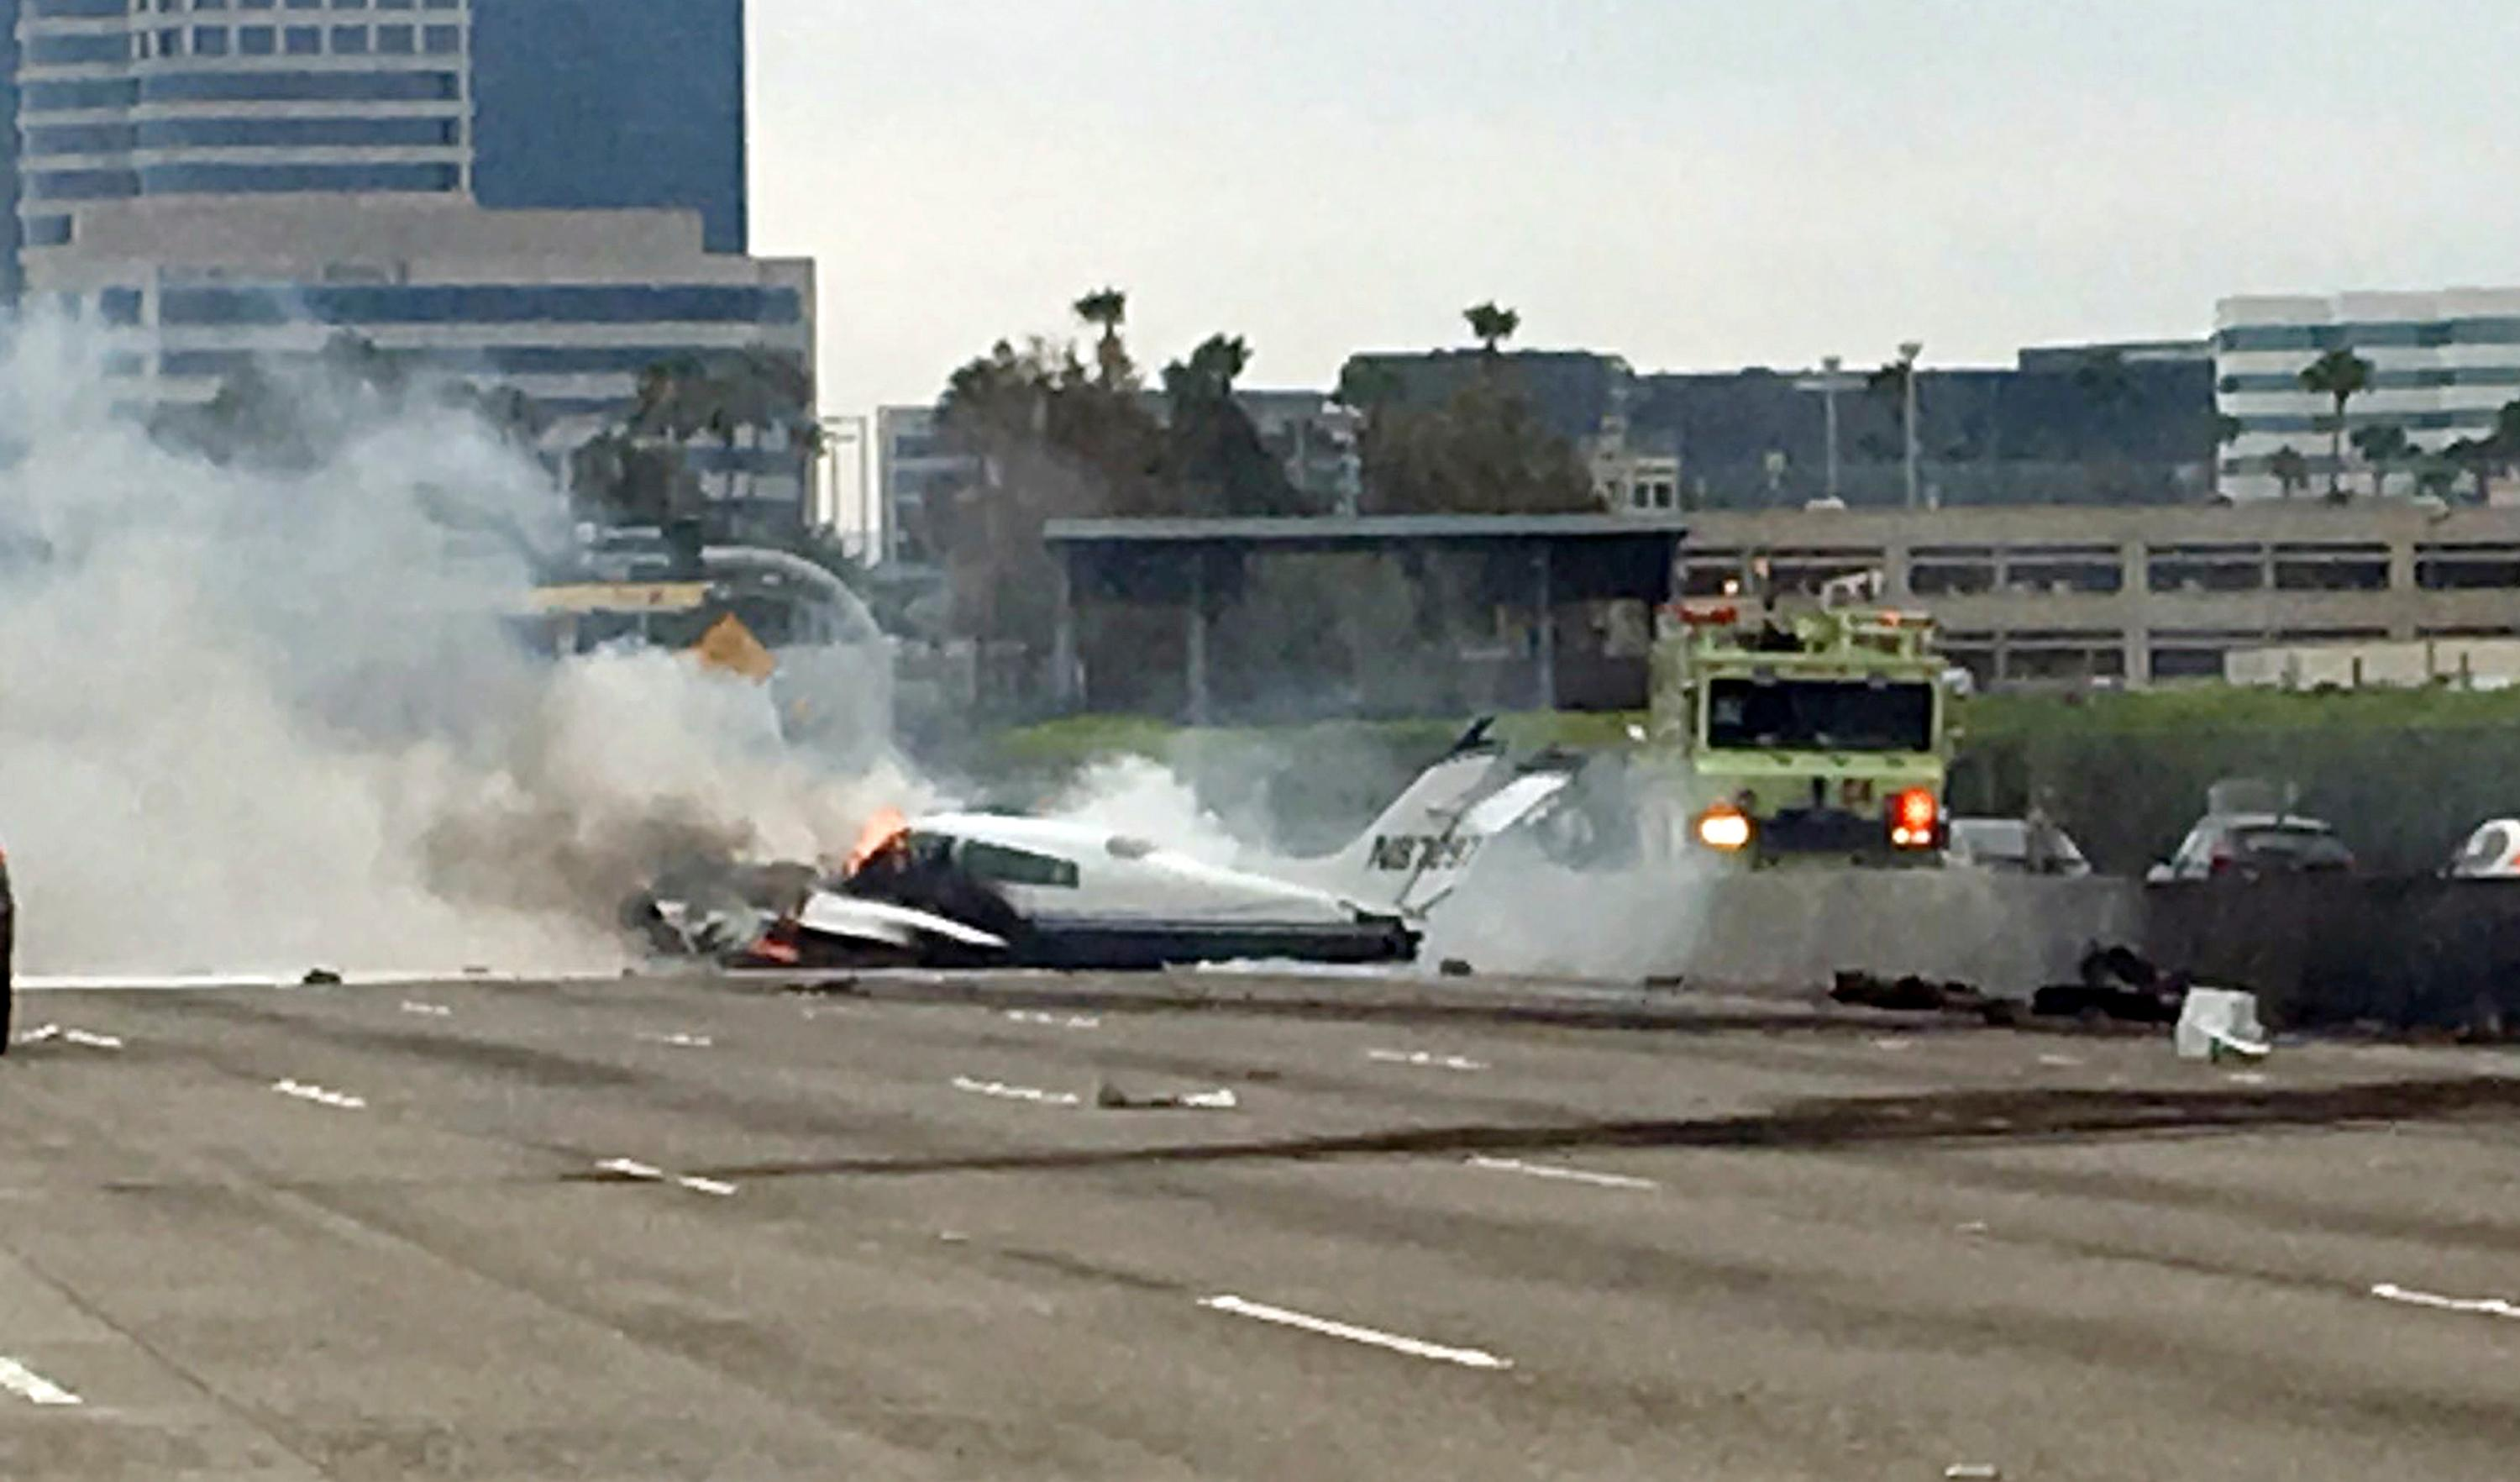 Flame and smoke erupt from a twin-engine prop jet after it crashed on Interstate 405, just short of the runway at John Wayne Orange County Airport, in Costa Mesa, Calif., Friday, June 30, 2017. Officials said two people have been injured and will be taken by helicopter to a hospital. The freeway was shut down in both directions. (Rafi Mamalian via AP)